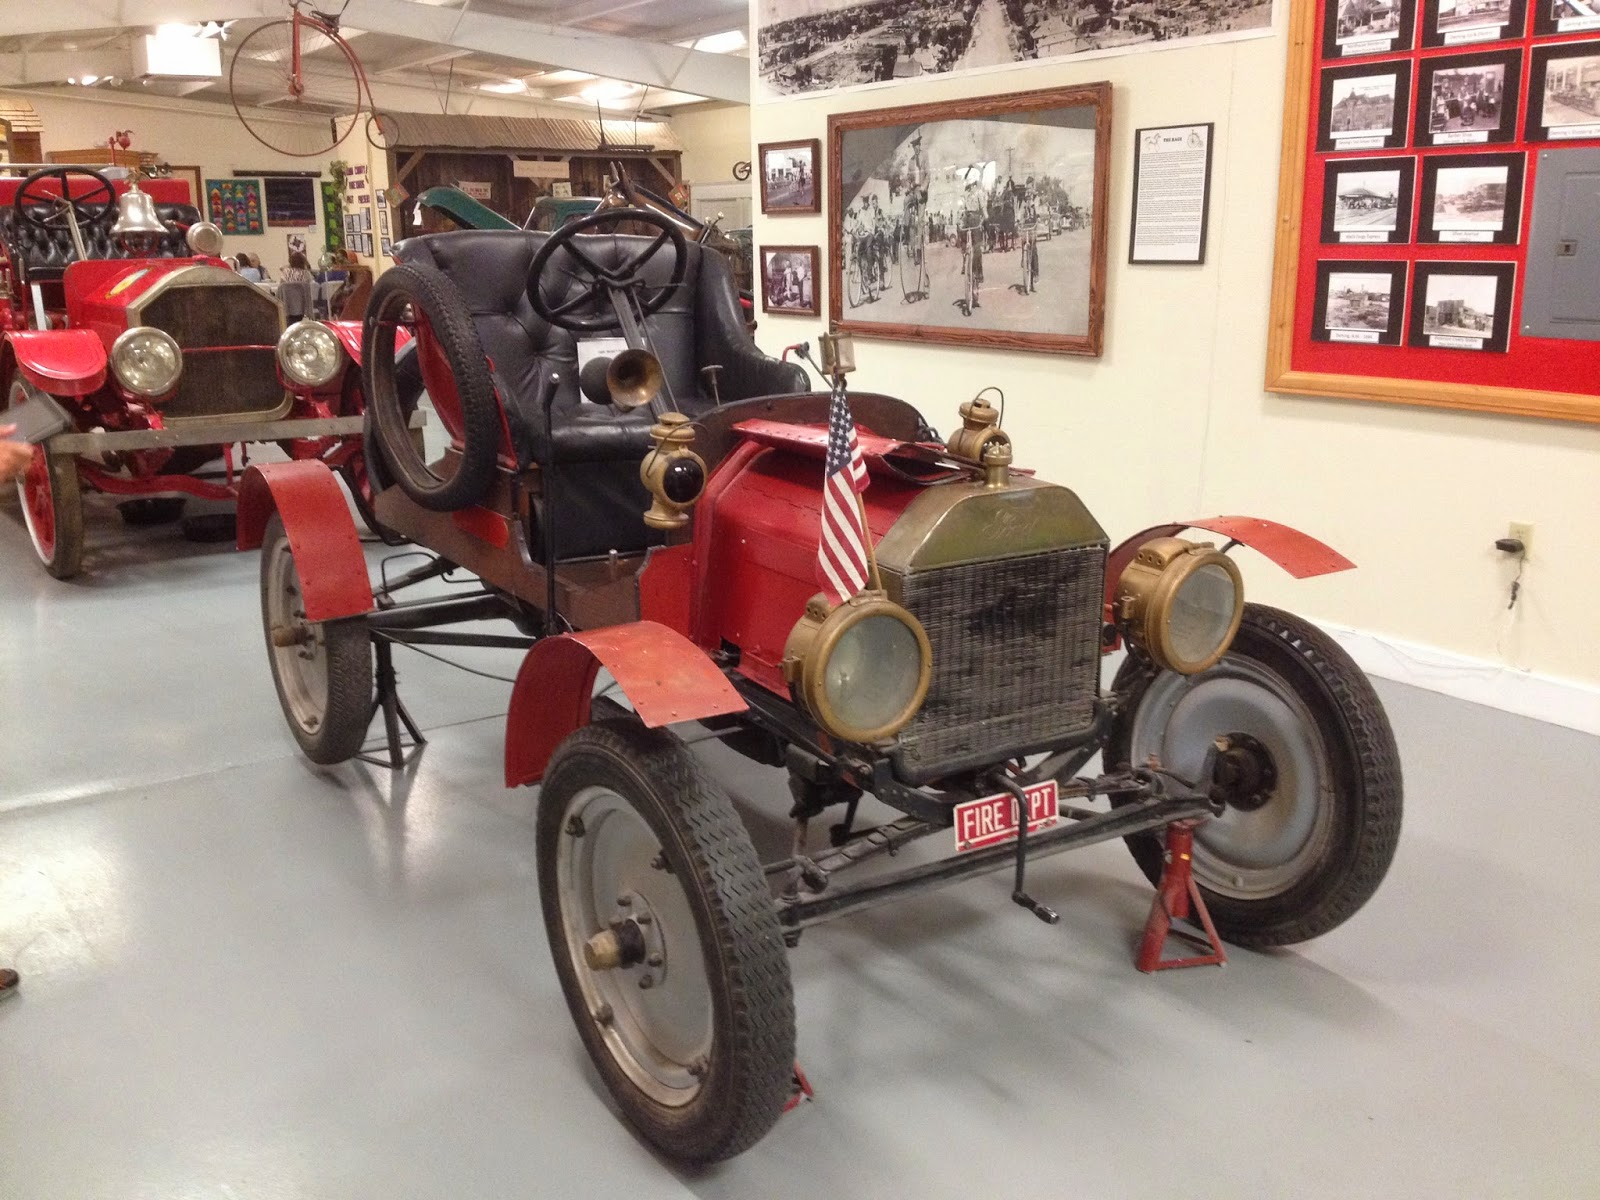 Fire Chief's red 1909 Model T